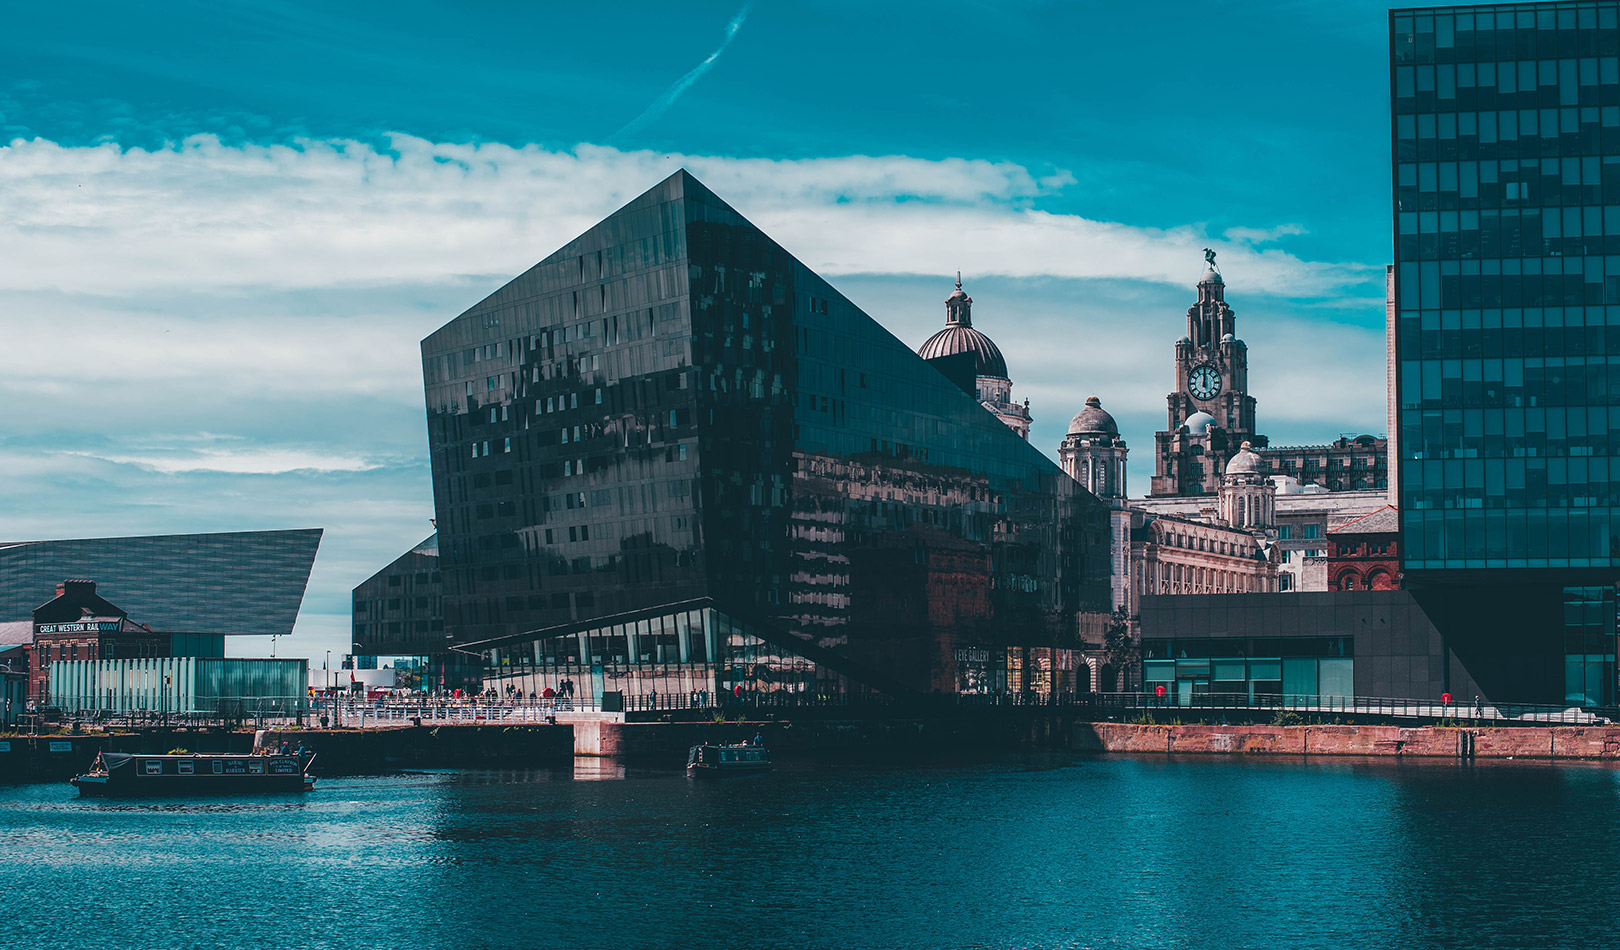 Albert Dock and Tate Liverpool